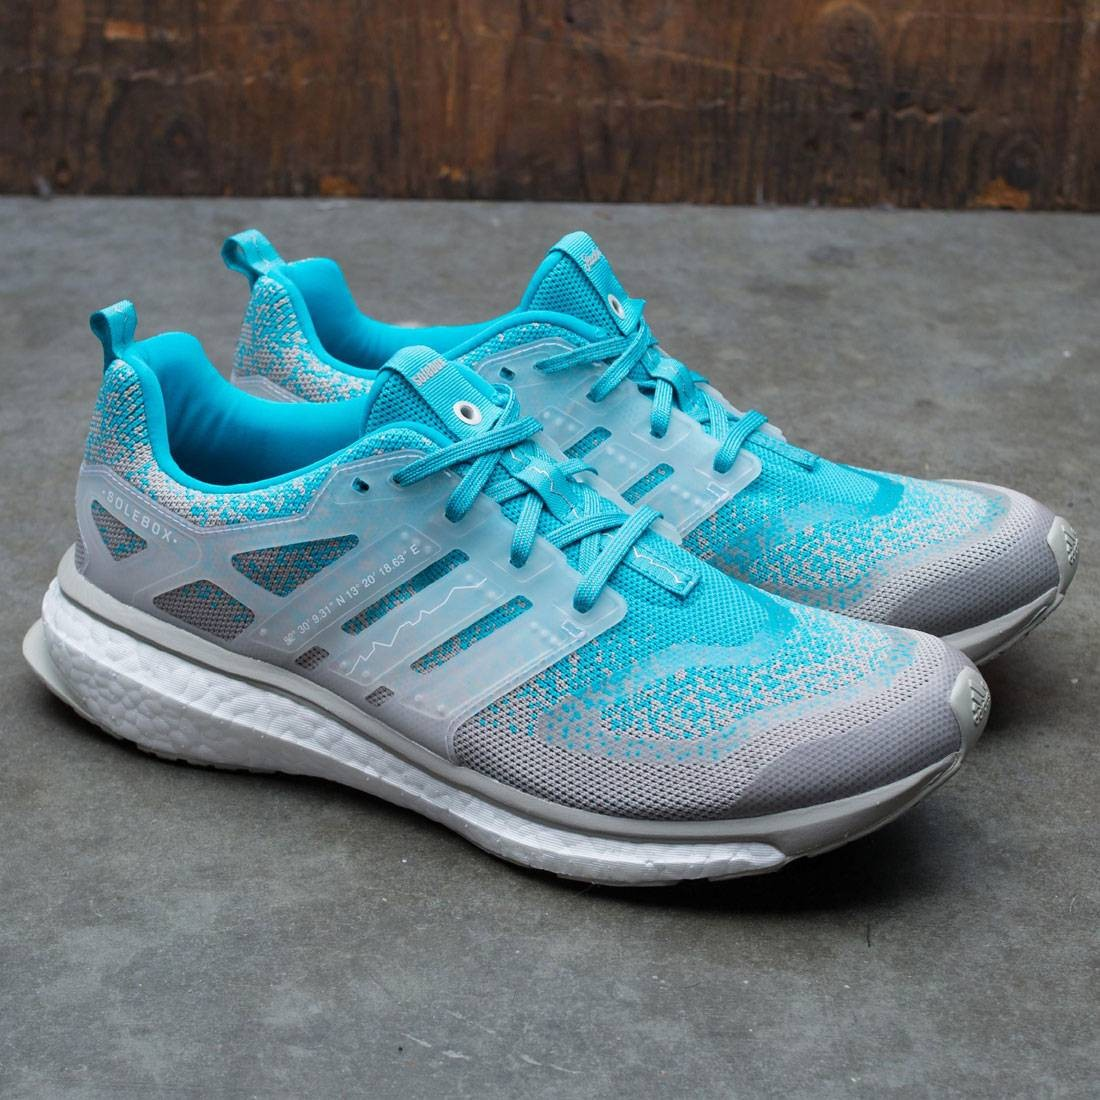 reputable site 7dd00 68252 Adidas Consortium x Packer x Solebox Men Energy Boost Sneaker Exchange (blue   energy blue  sesame  gum)